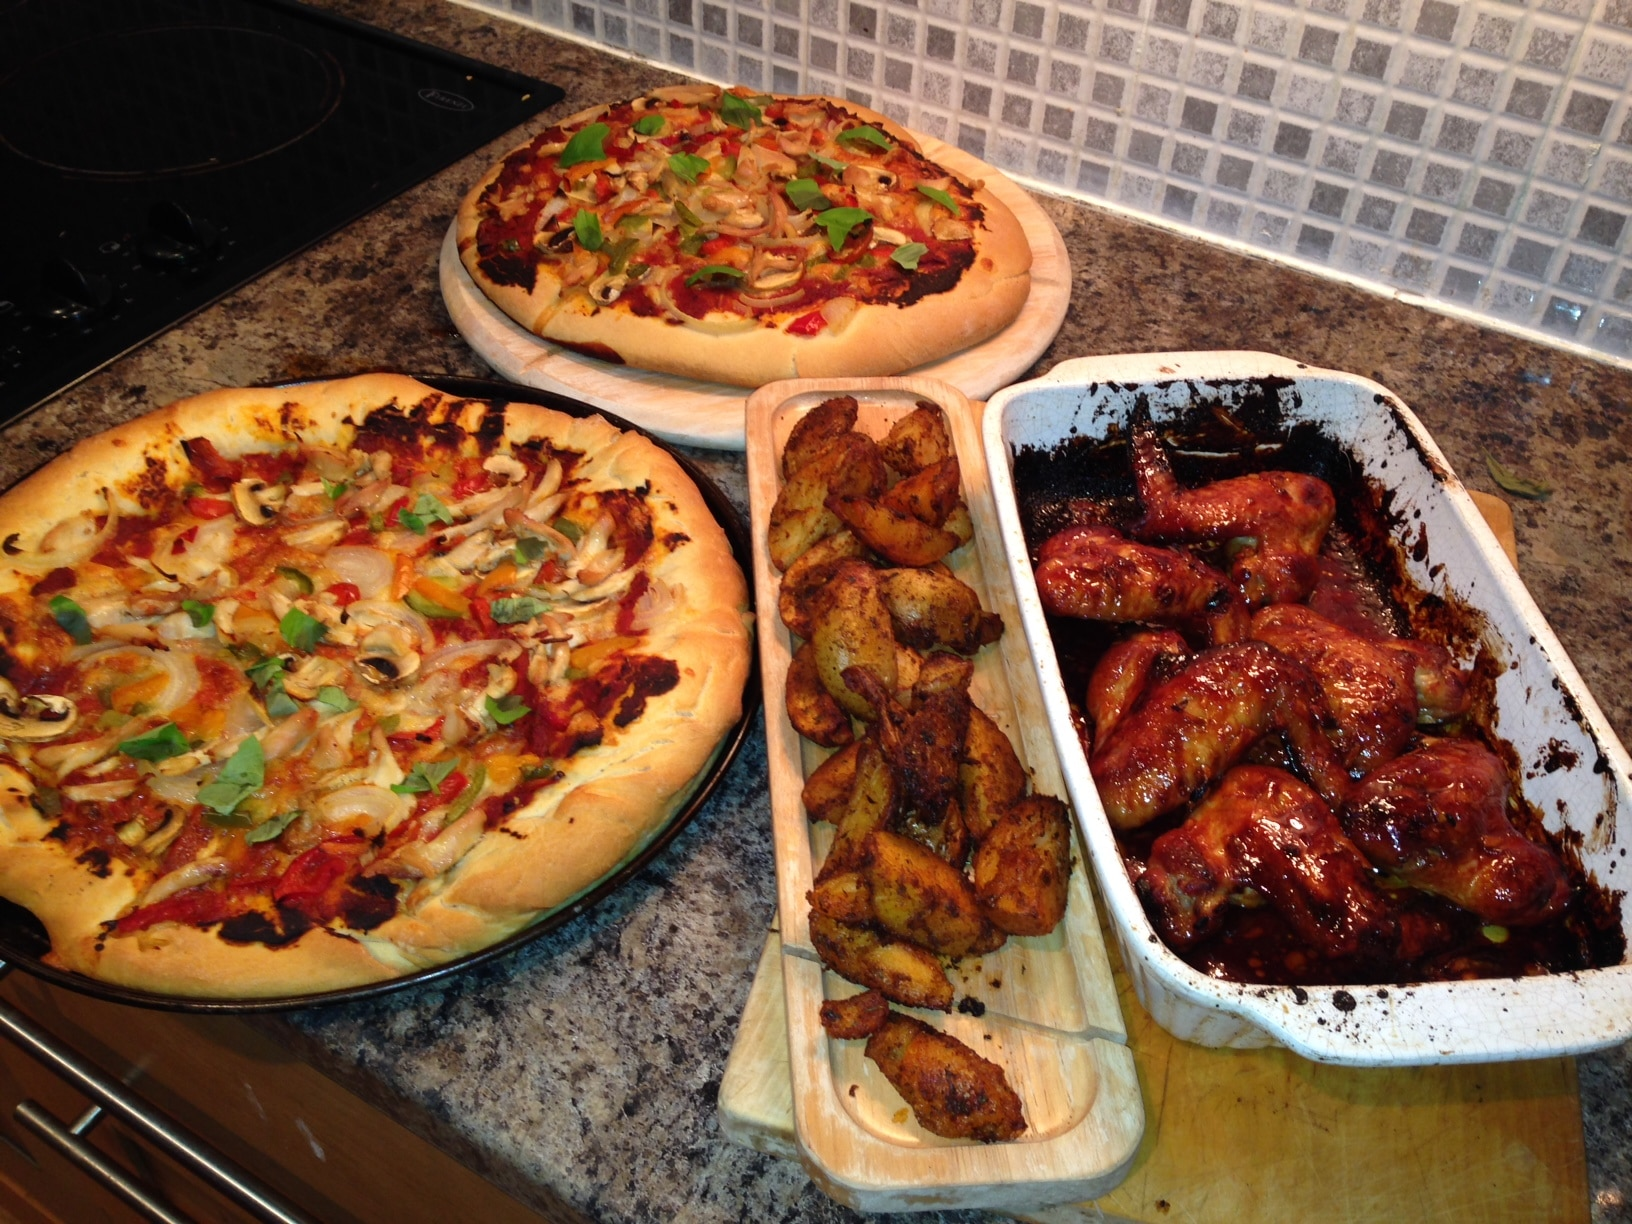 Fakeaway Recipe: Pizza, Chicken Wings and Potato Wedges